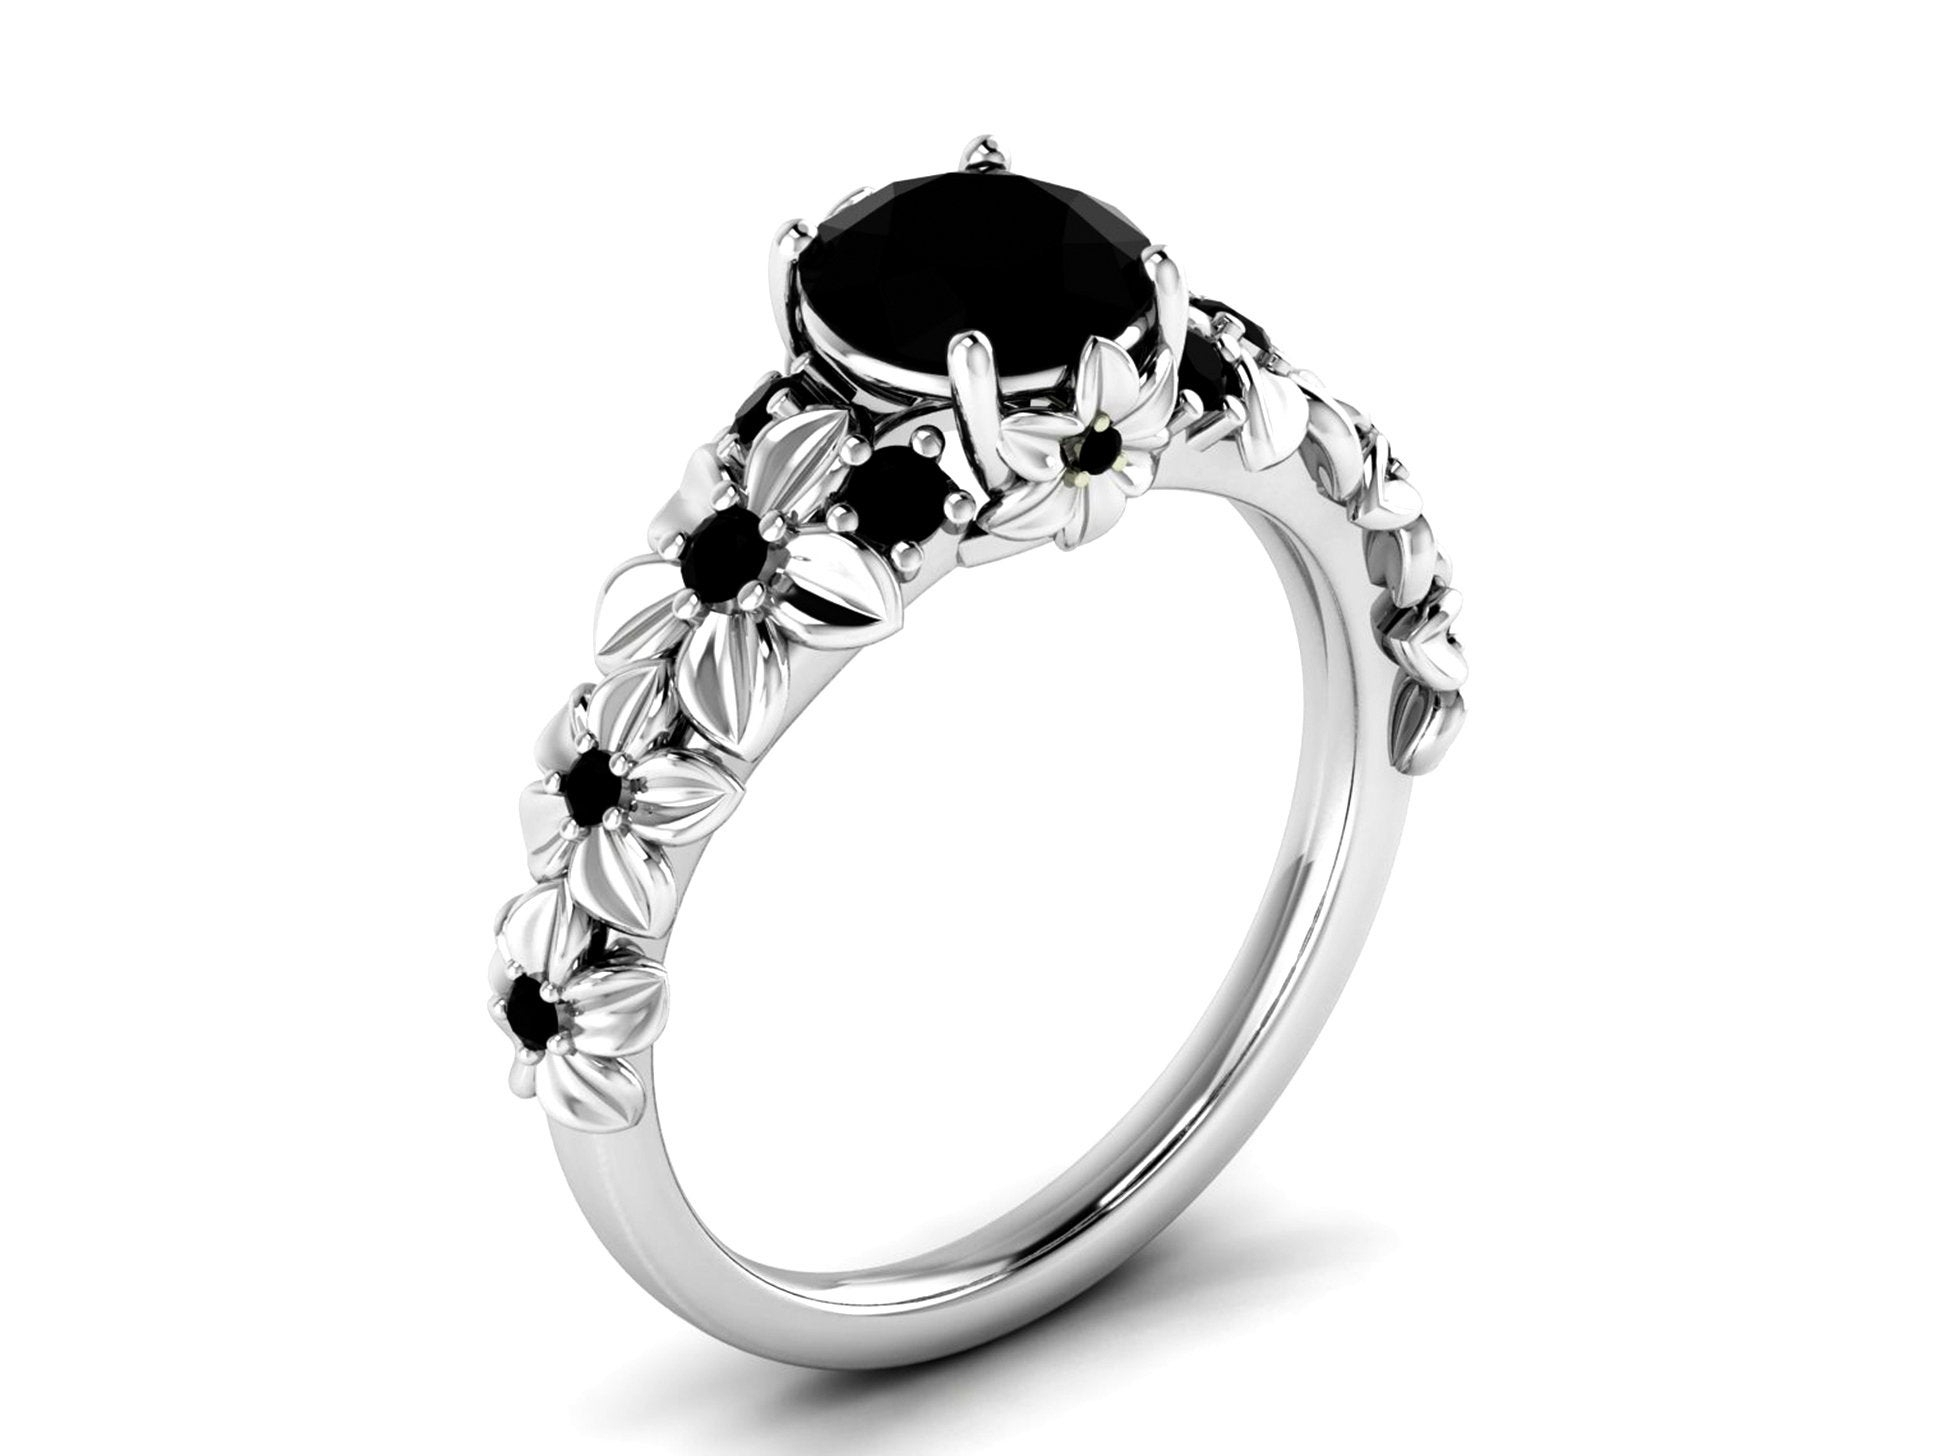 Sterling Silver Black Onyx Ring Black Spinel Ring Black Onyx Rings For Women Black Stone Rings For Women Silver Onyx Ring Anniversary Rings Throughout Most Up To Date Enhanced Black And White Diamond Vintage Style Anniversary Bands In Sterling Silver (Gallery 18 of 25)